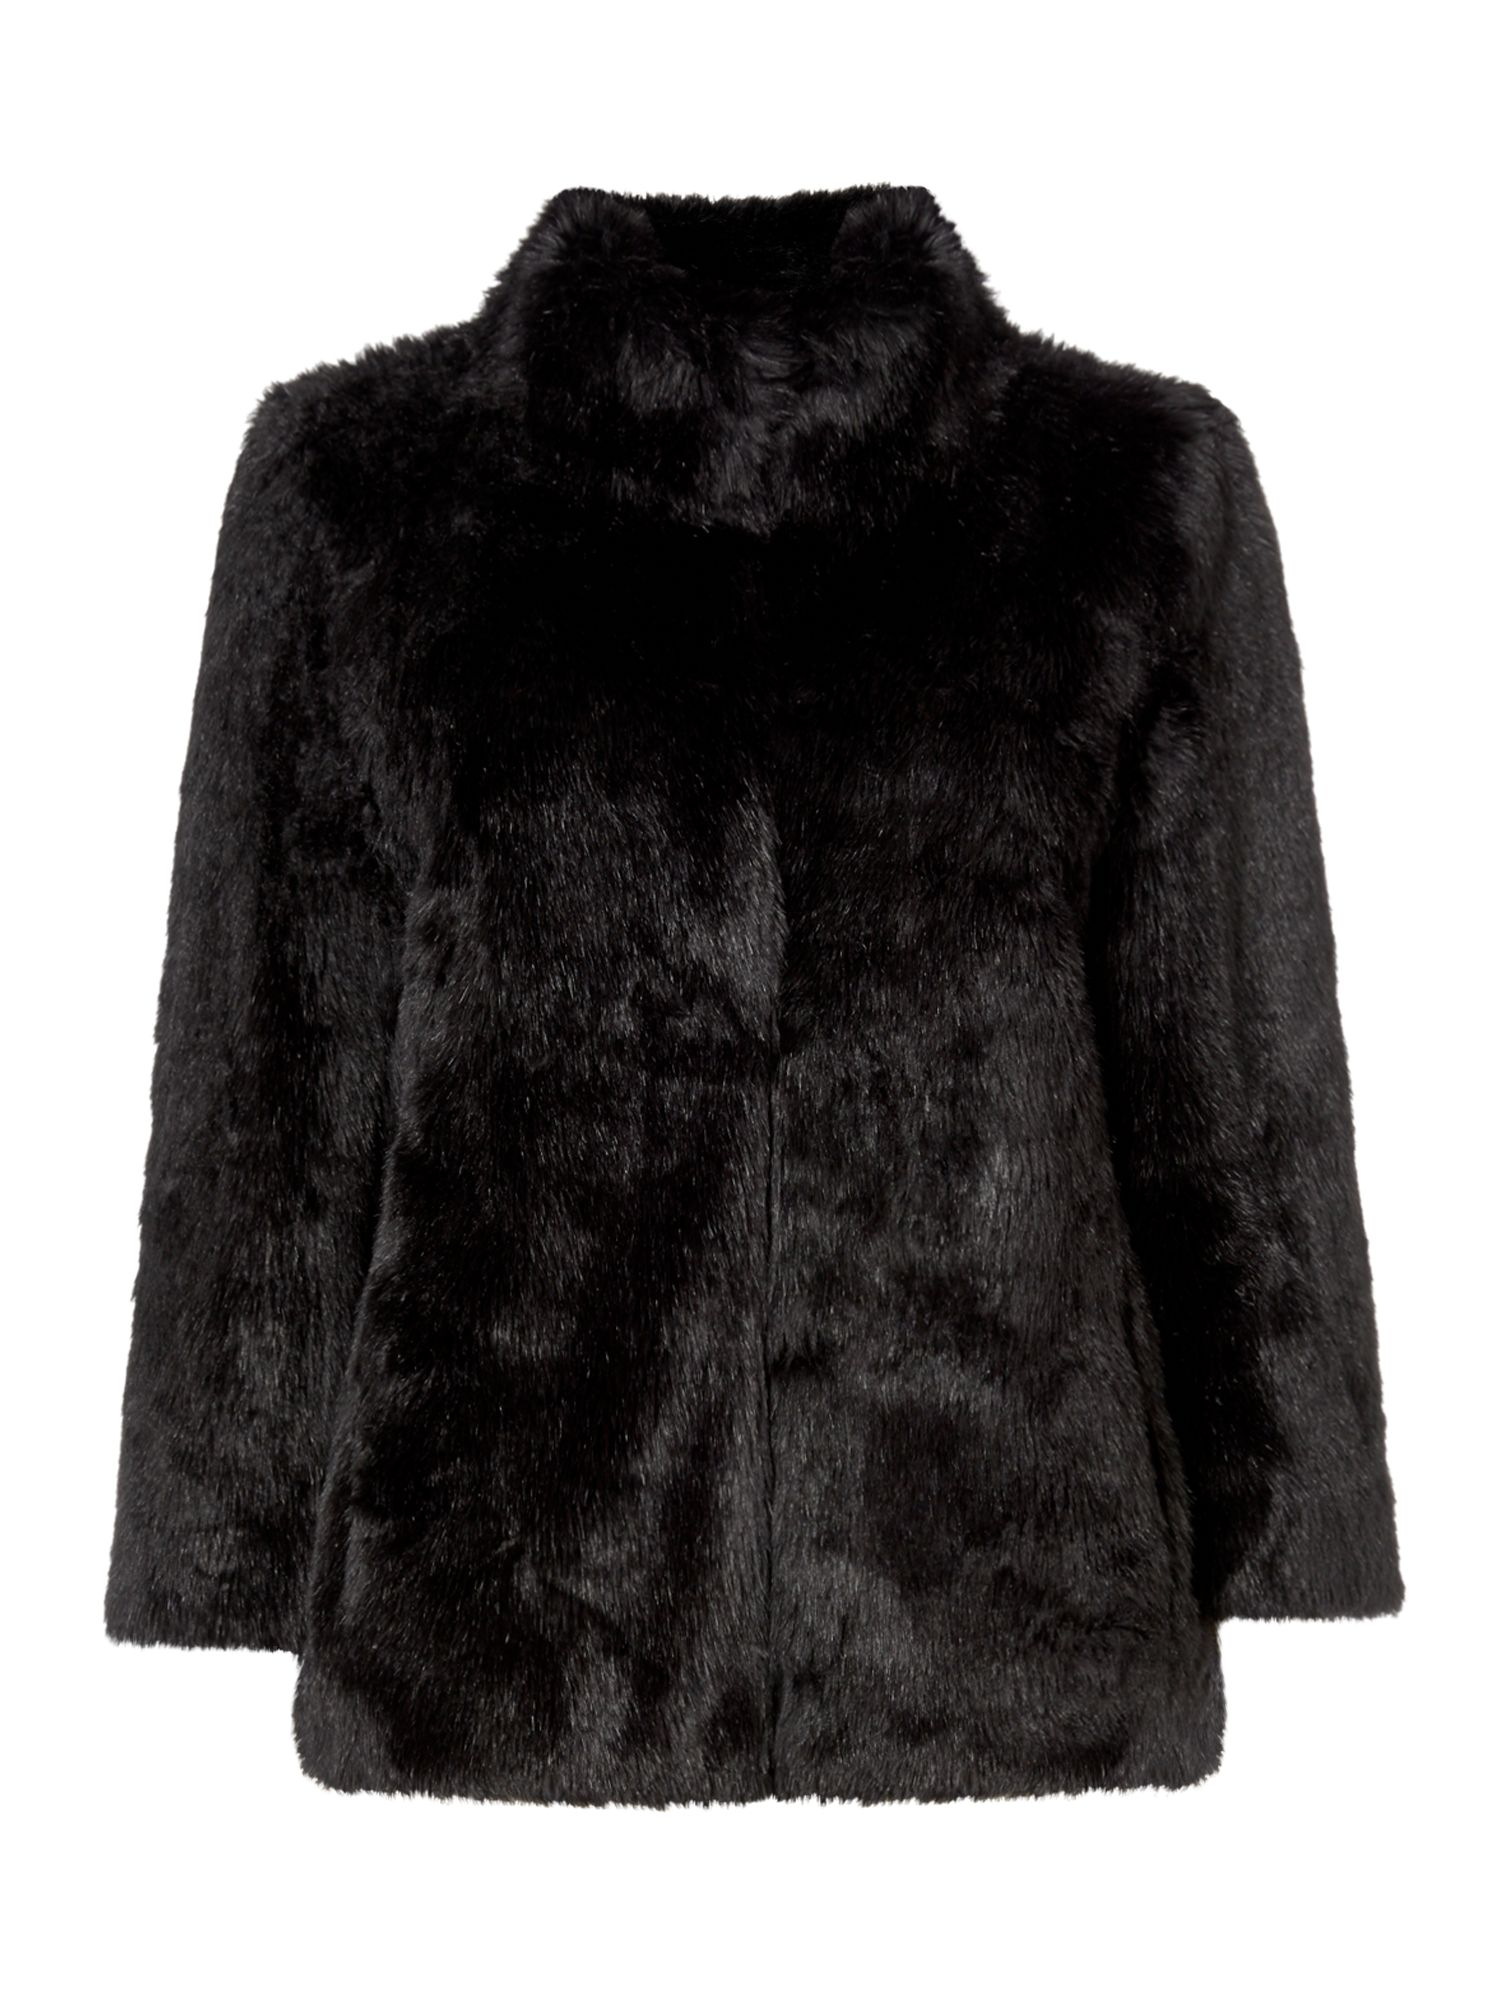 Michael Kors Faux fur jacket, Black